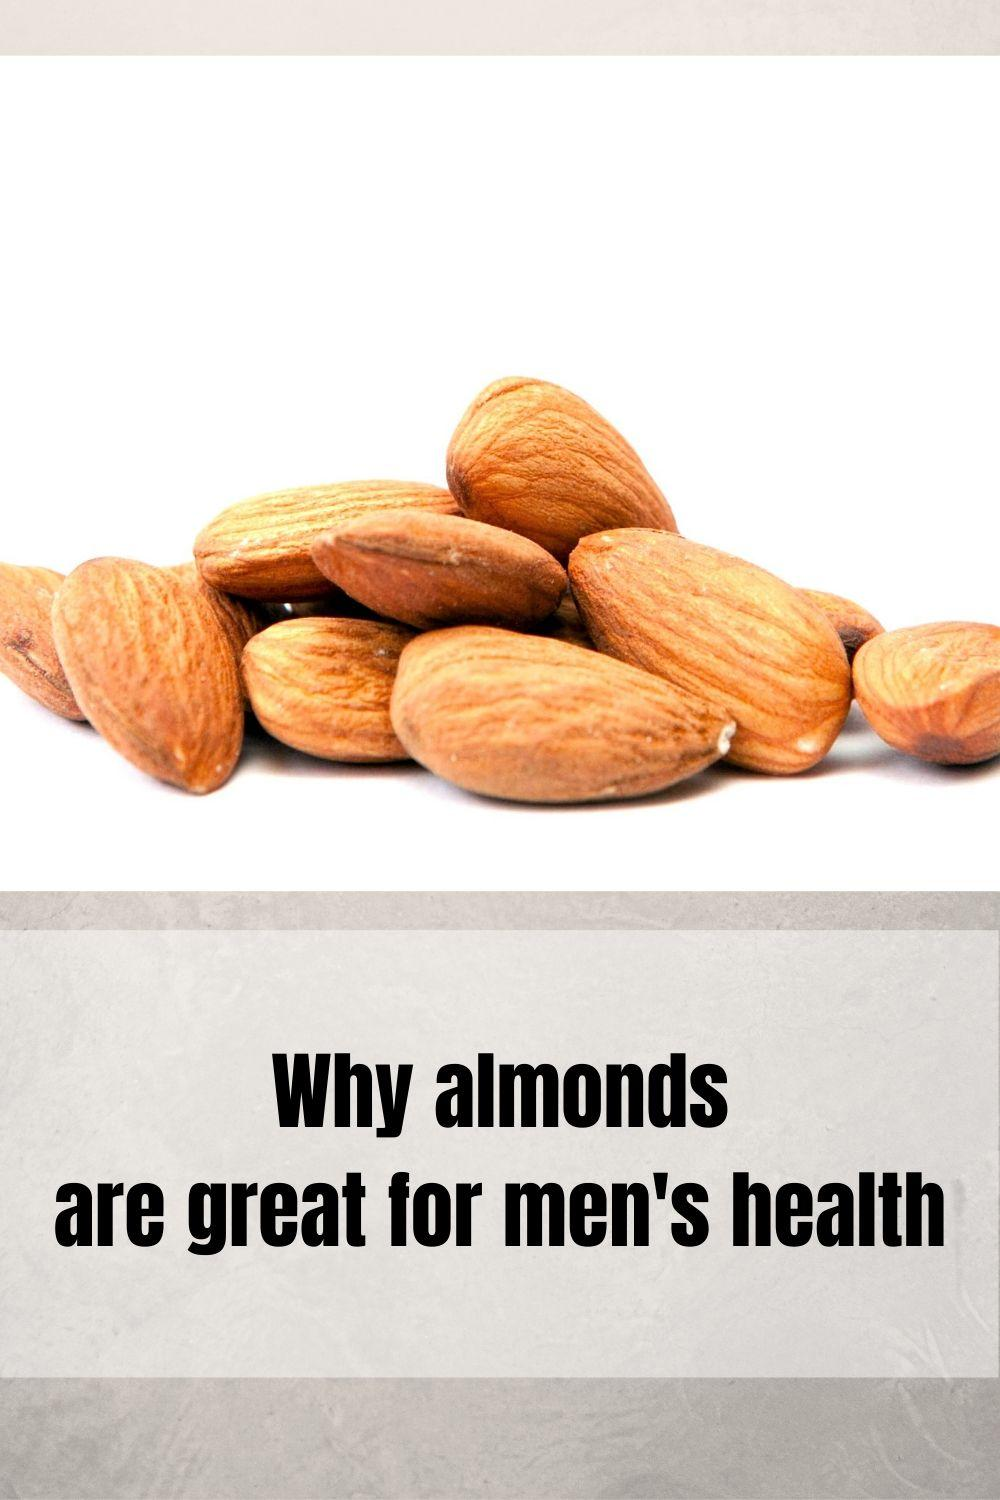 Why almonds are great for men's health